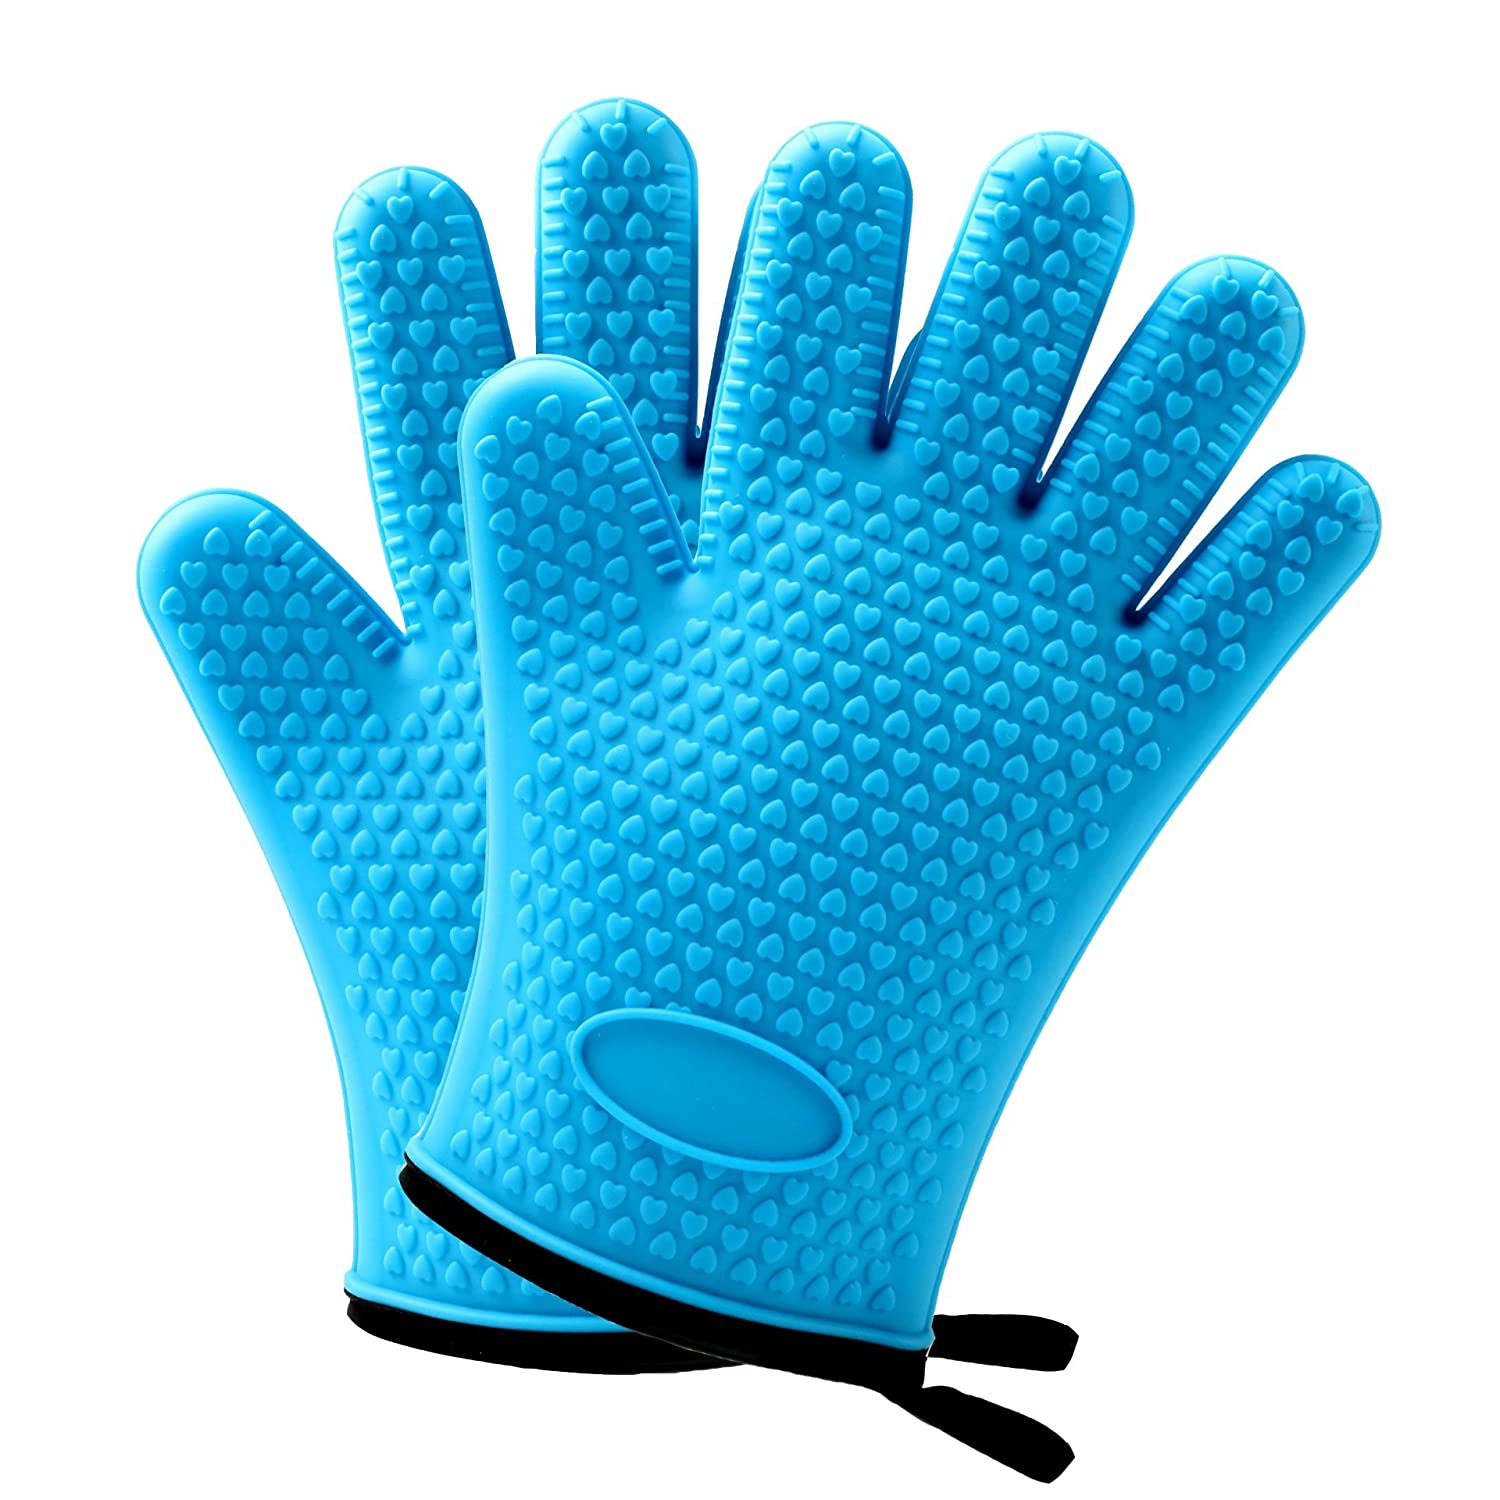 BBQ Silicone Cooking Gloves - Heat Resistant Oven Mitt for Grilling Kitchen Barbecue Safe Handling of Pans and Pots Baking Non-Slip Potholders Cooking Internal Protective Cotton Layer [1 Pair]